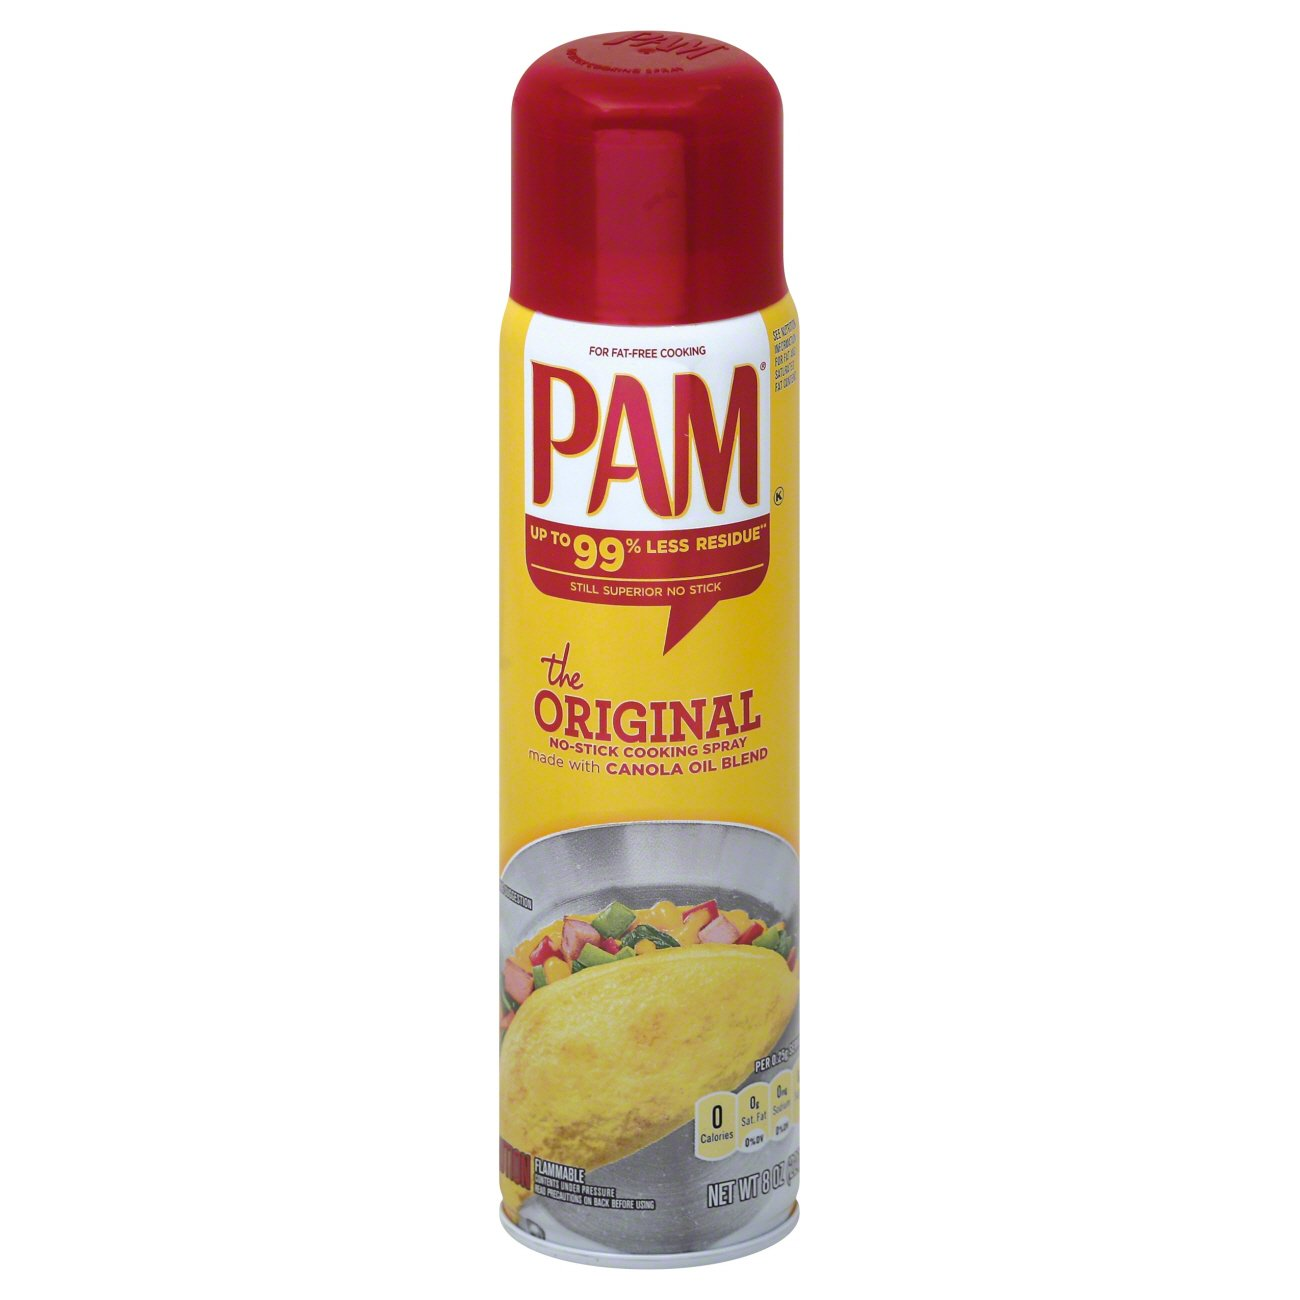 Pam Original No-Stick Cooking Spray - Shop Pam Original No-Stick ...